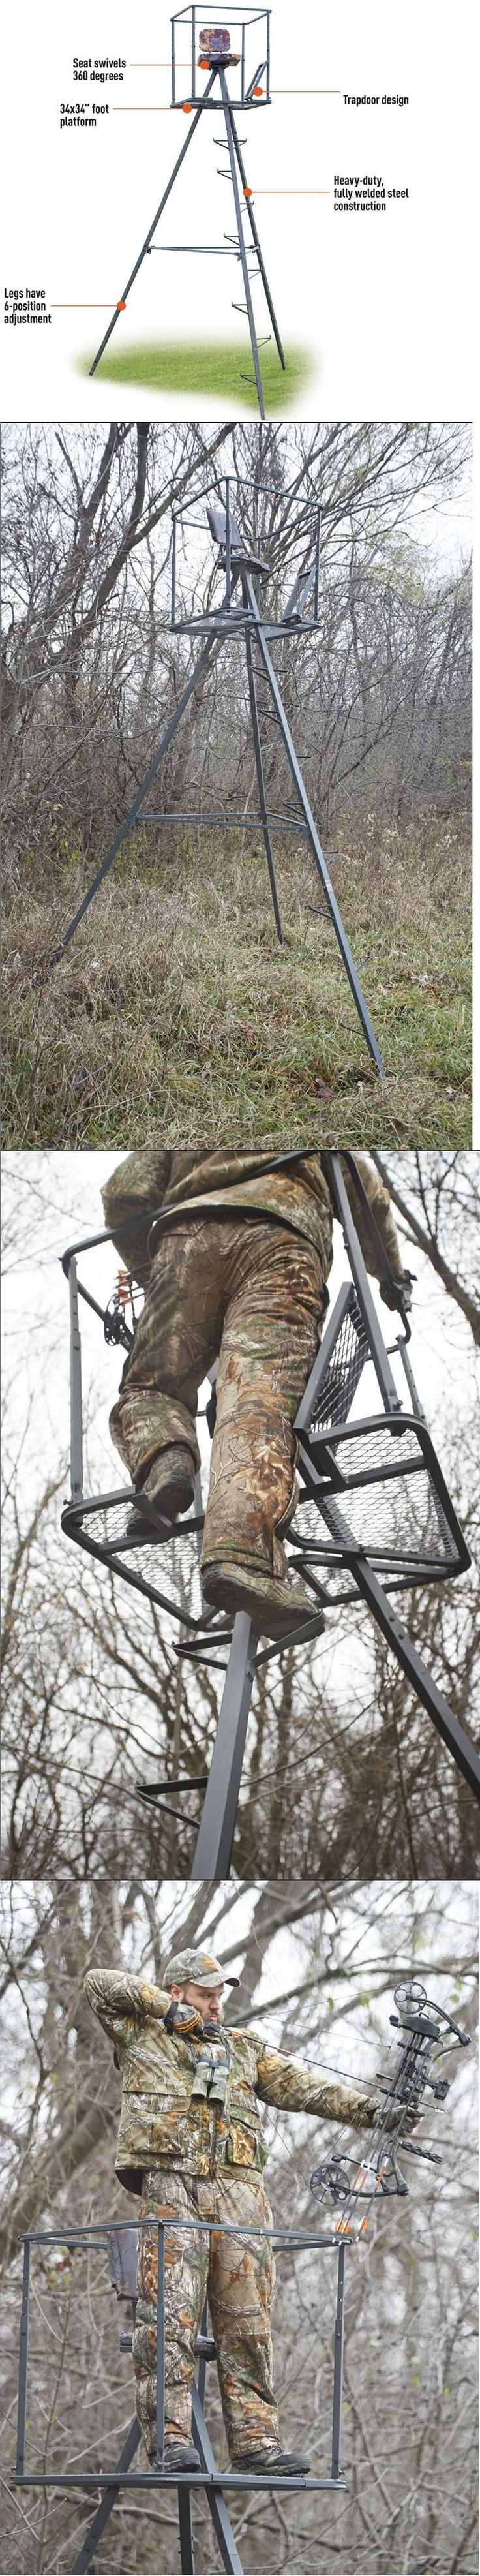 Tree Stands 52508: 13 Tripod Deer Stand Tree Blind Heavy-Duty Bow Rifle Hog Hunting Archery Tower BUY IT NOW ONLY: $218.95